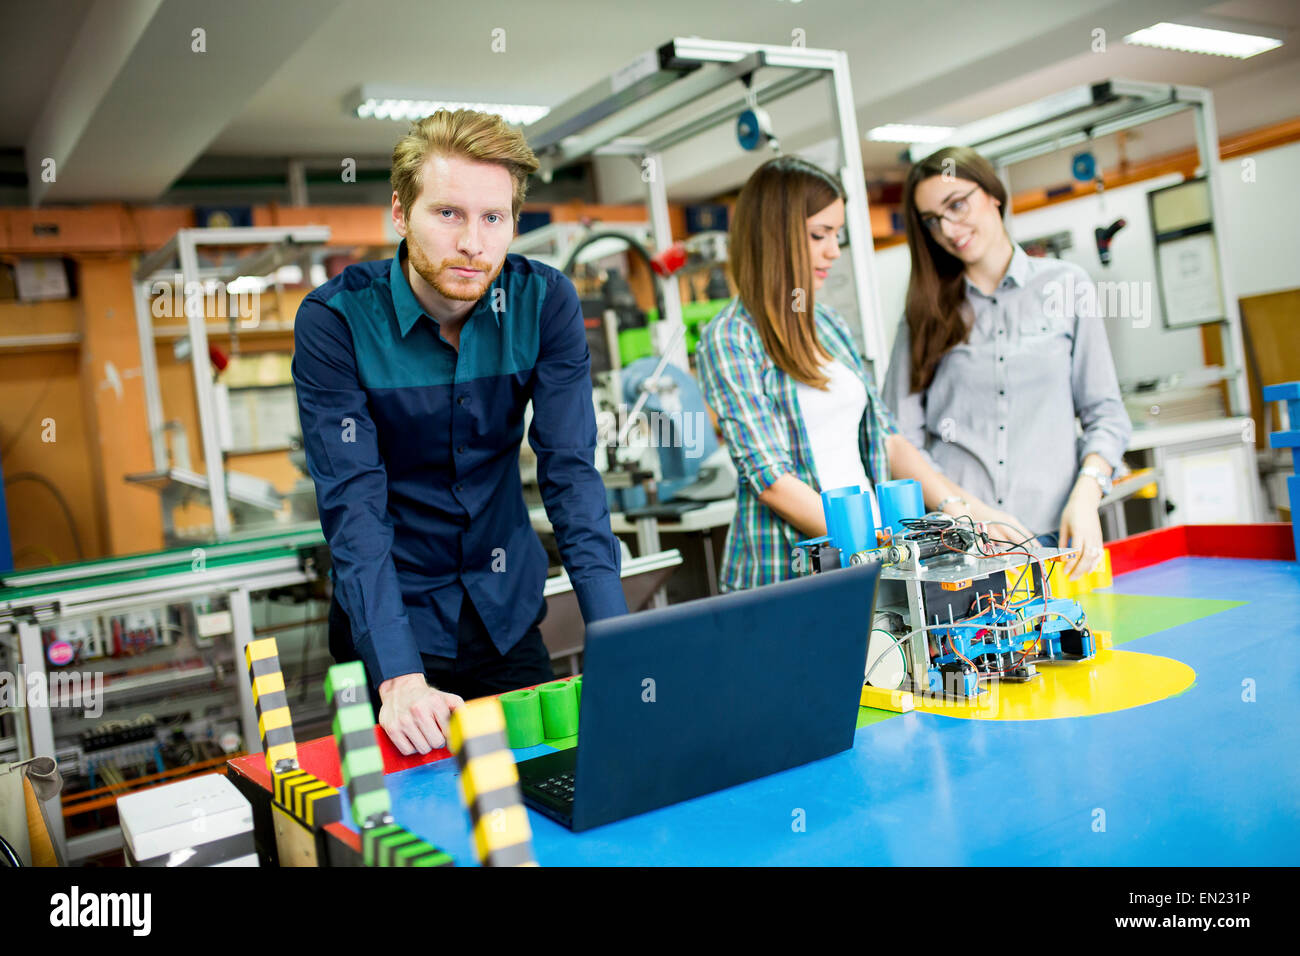 Young People In The Robotics Classroom Stock Photo 81795554 Alamy